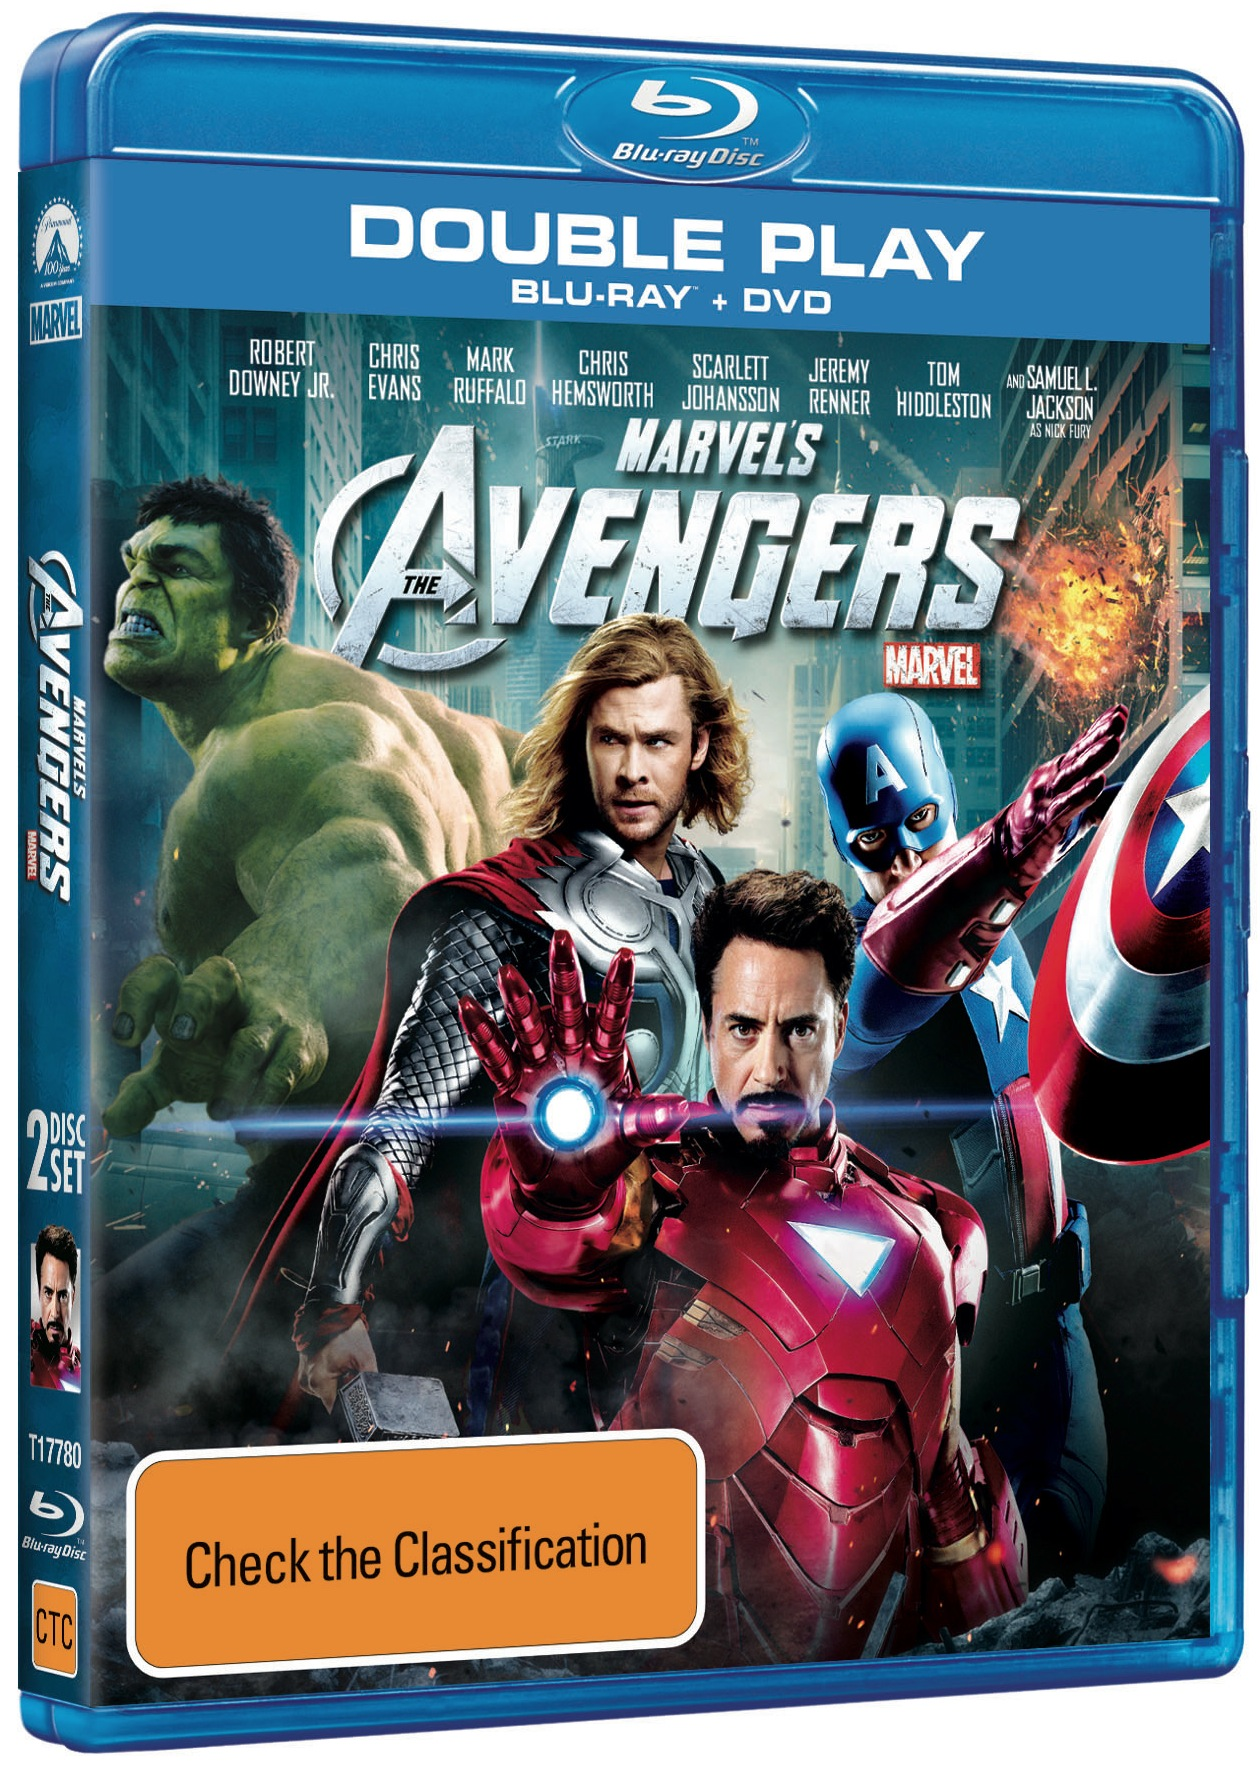 [MULTI] Avengers (2012) [TRUEFRENCH] [Bluray 720p]